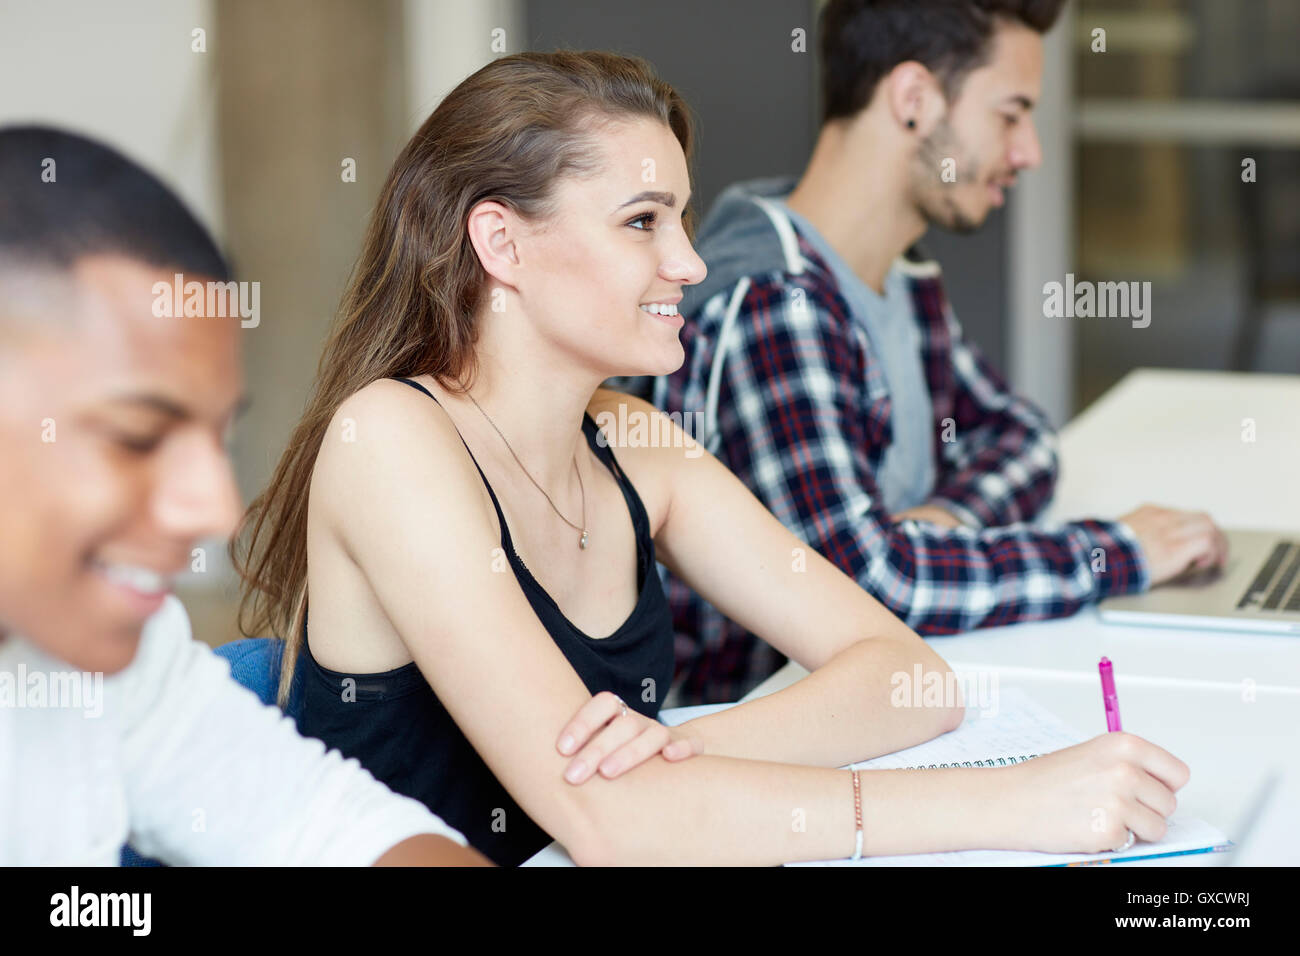 Students taking notes in higher education college classroom - Stock Image